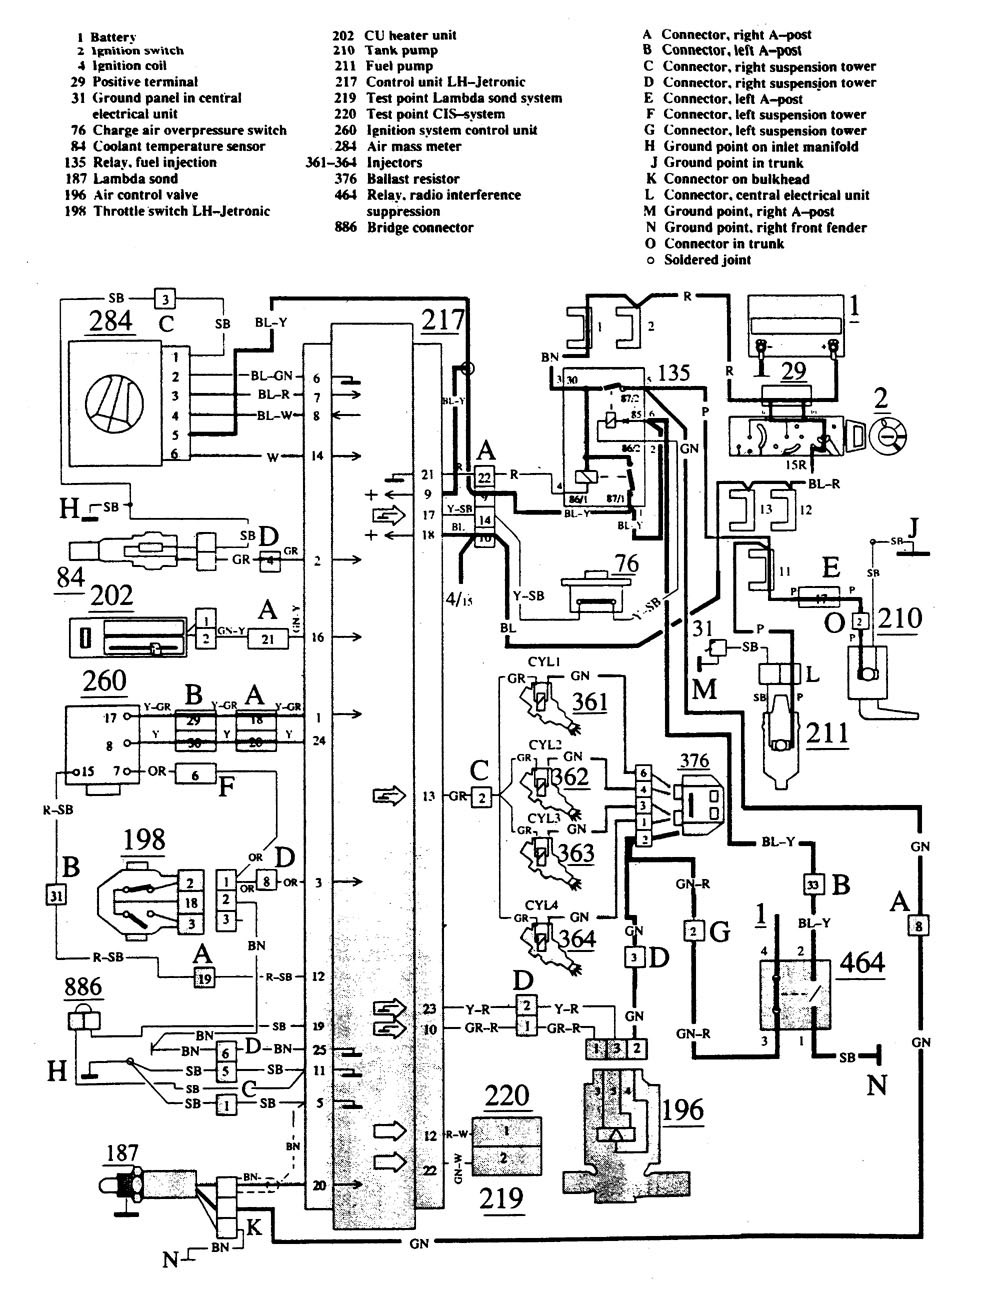 volvo 740 1988 1989 wiring diagrams fuel controls carknowledge rh carknowledge info